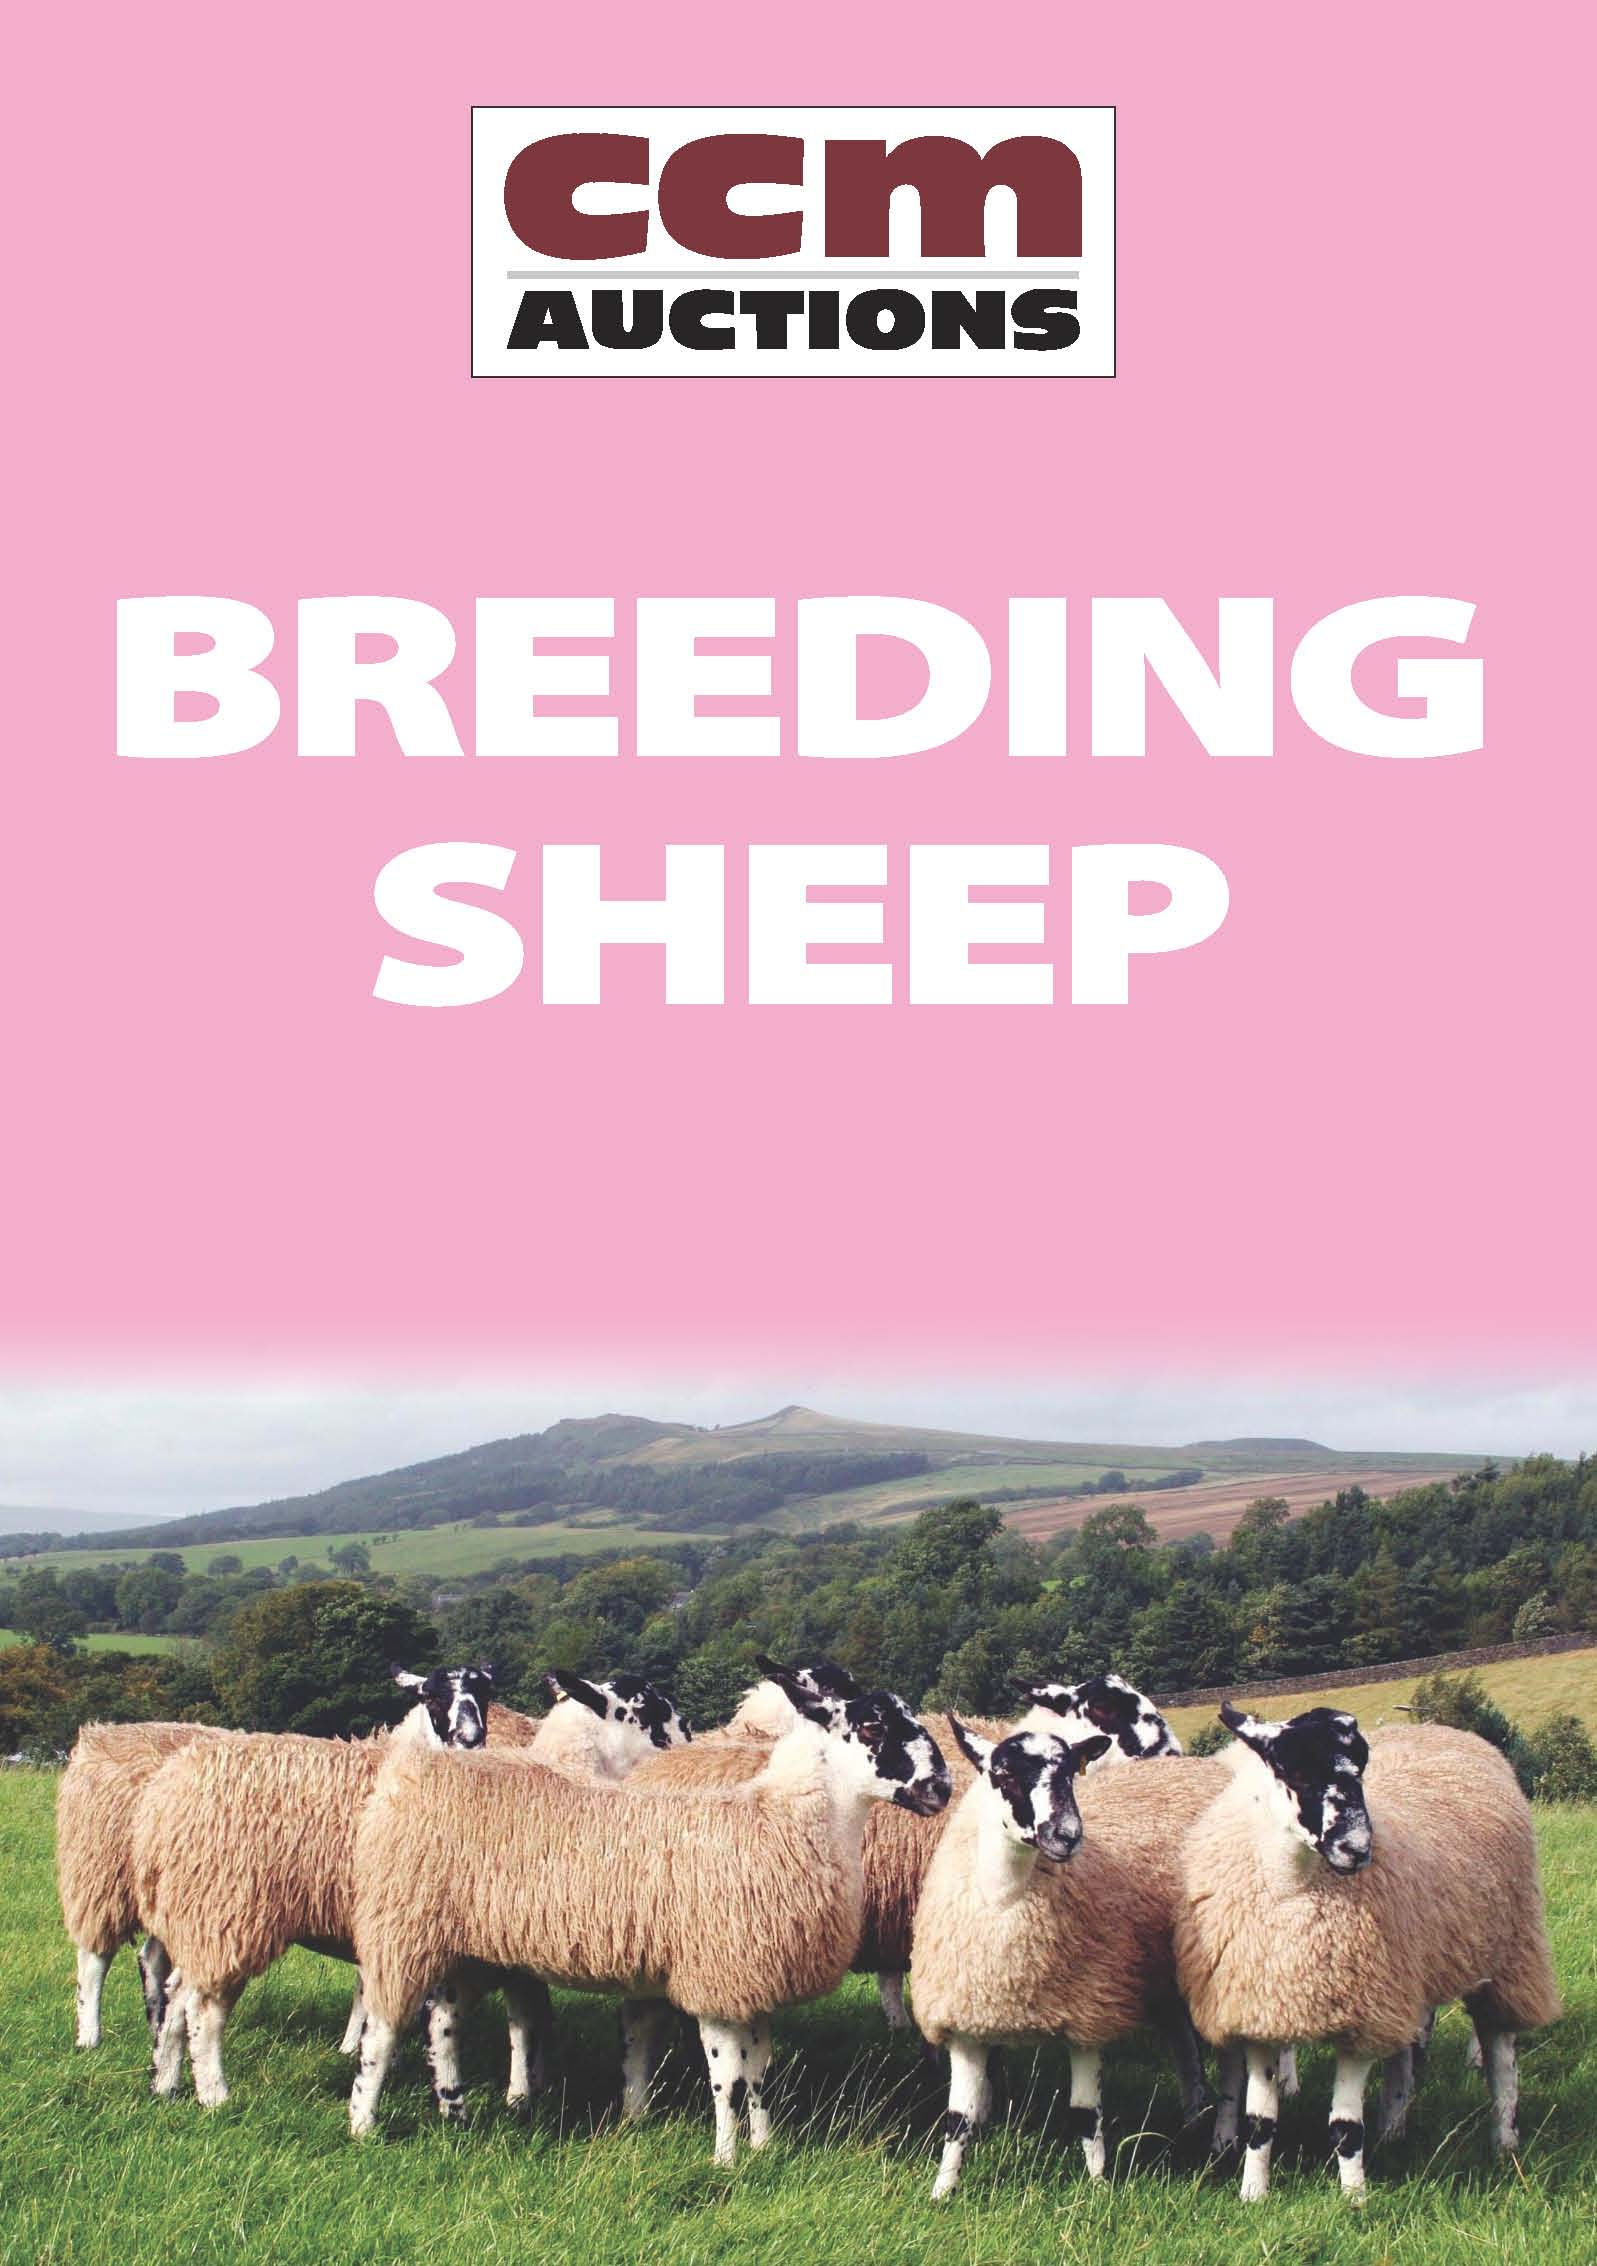 TUESDAY 16TH SEPTEMBER - GIMMER SHEARLING PRESS REPORT